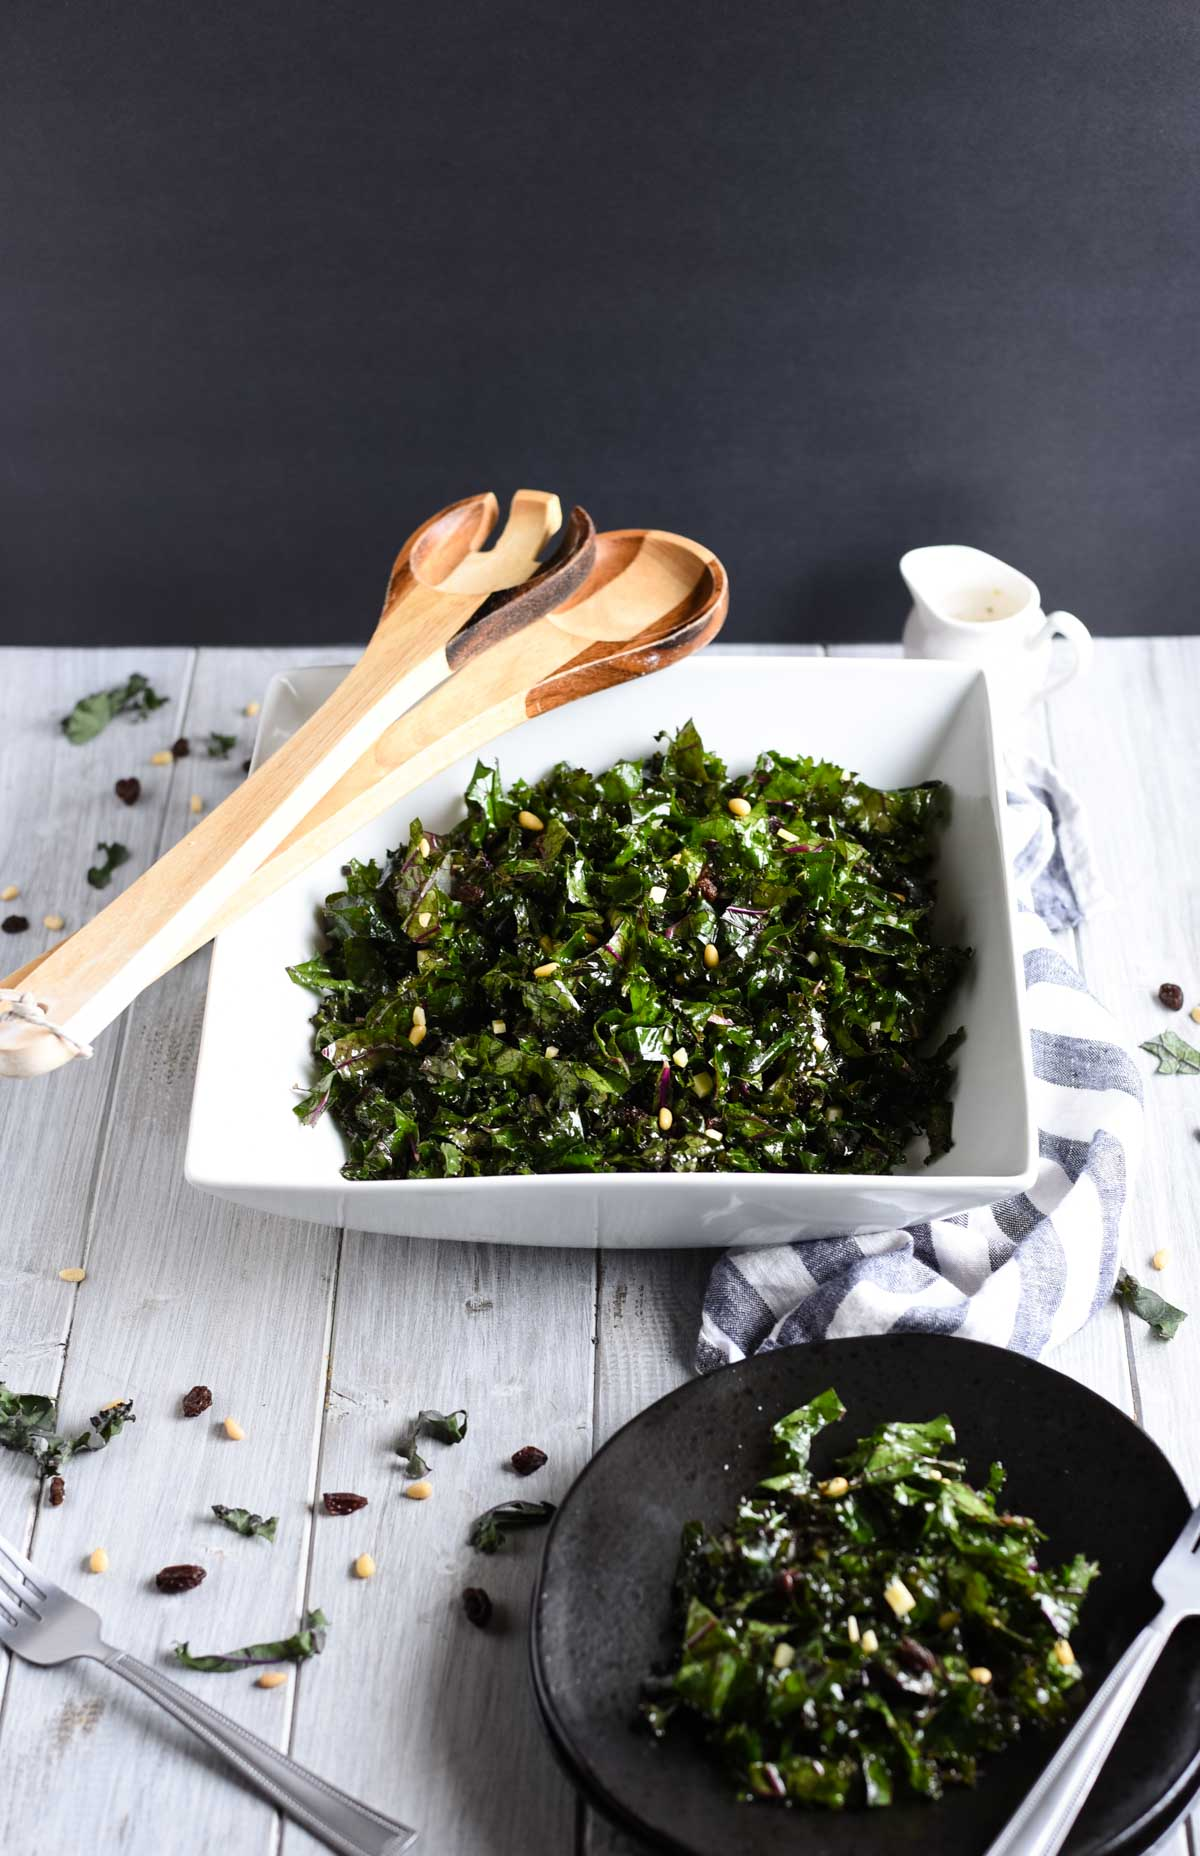 Picture of kale salad with black background